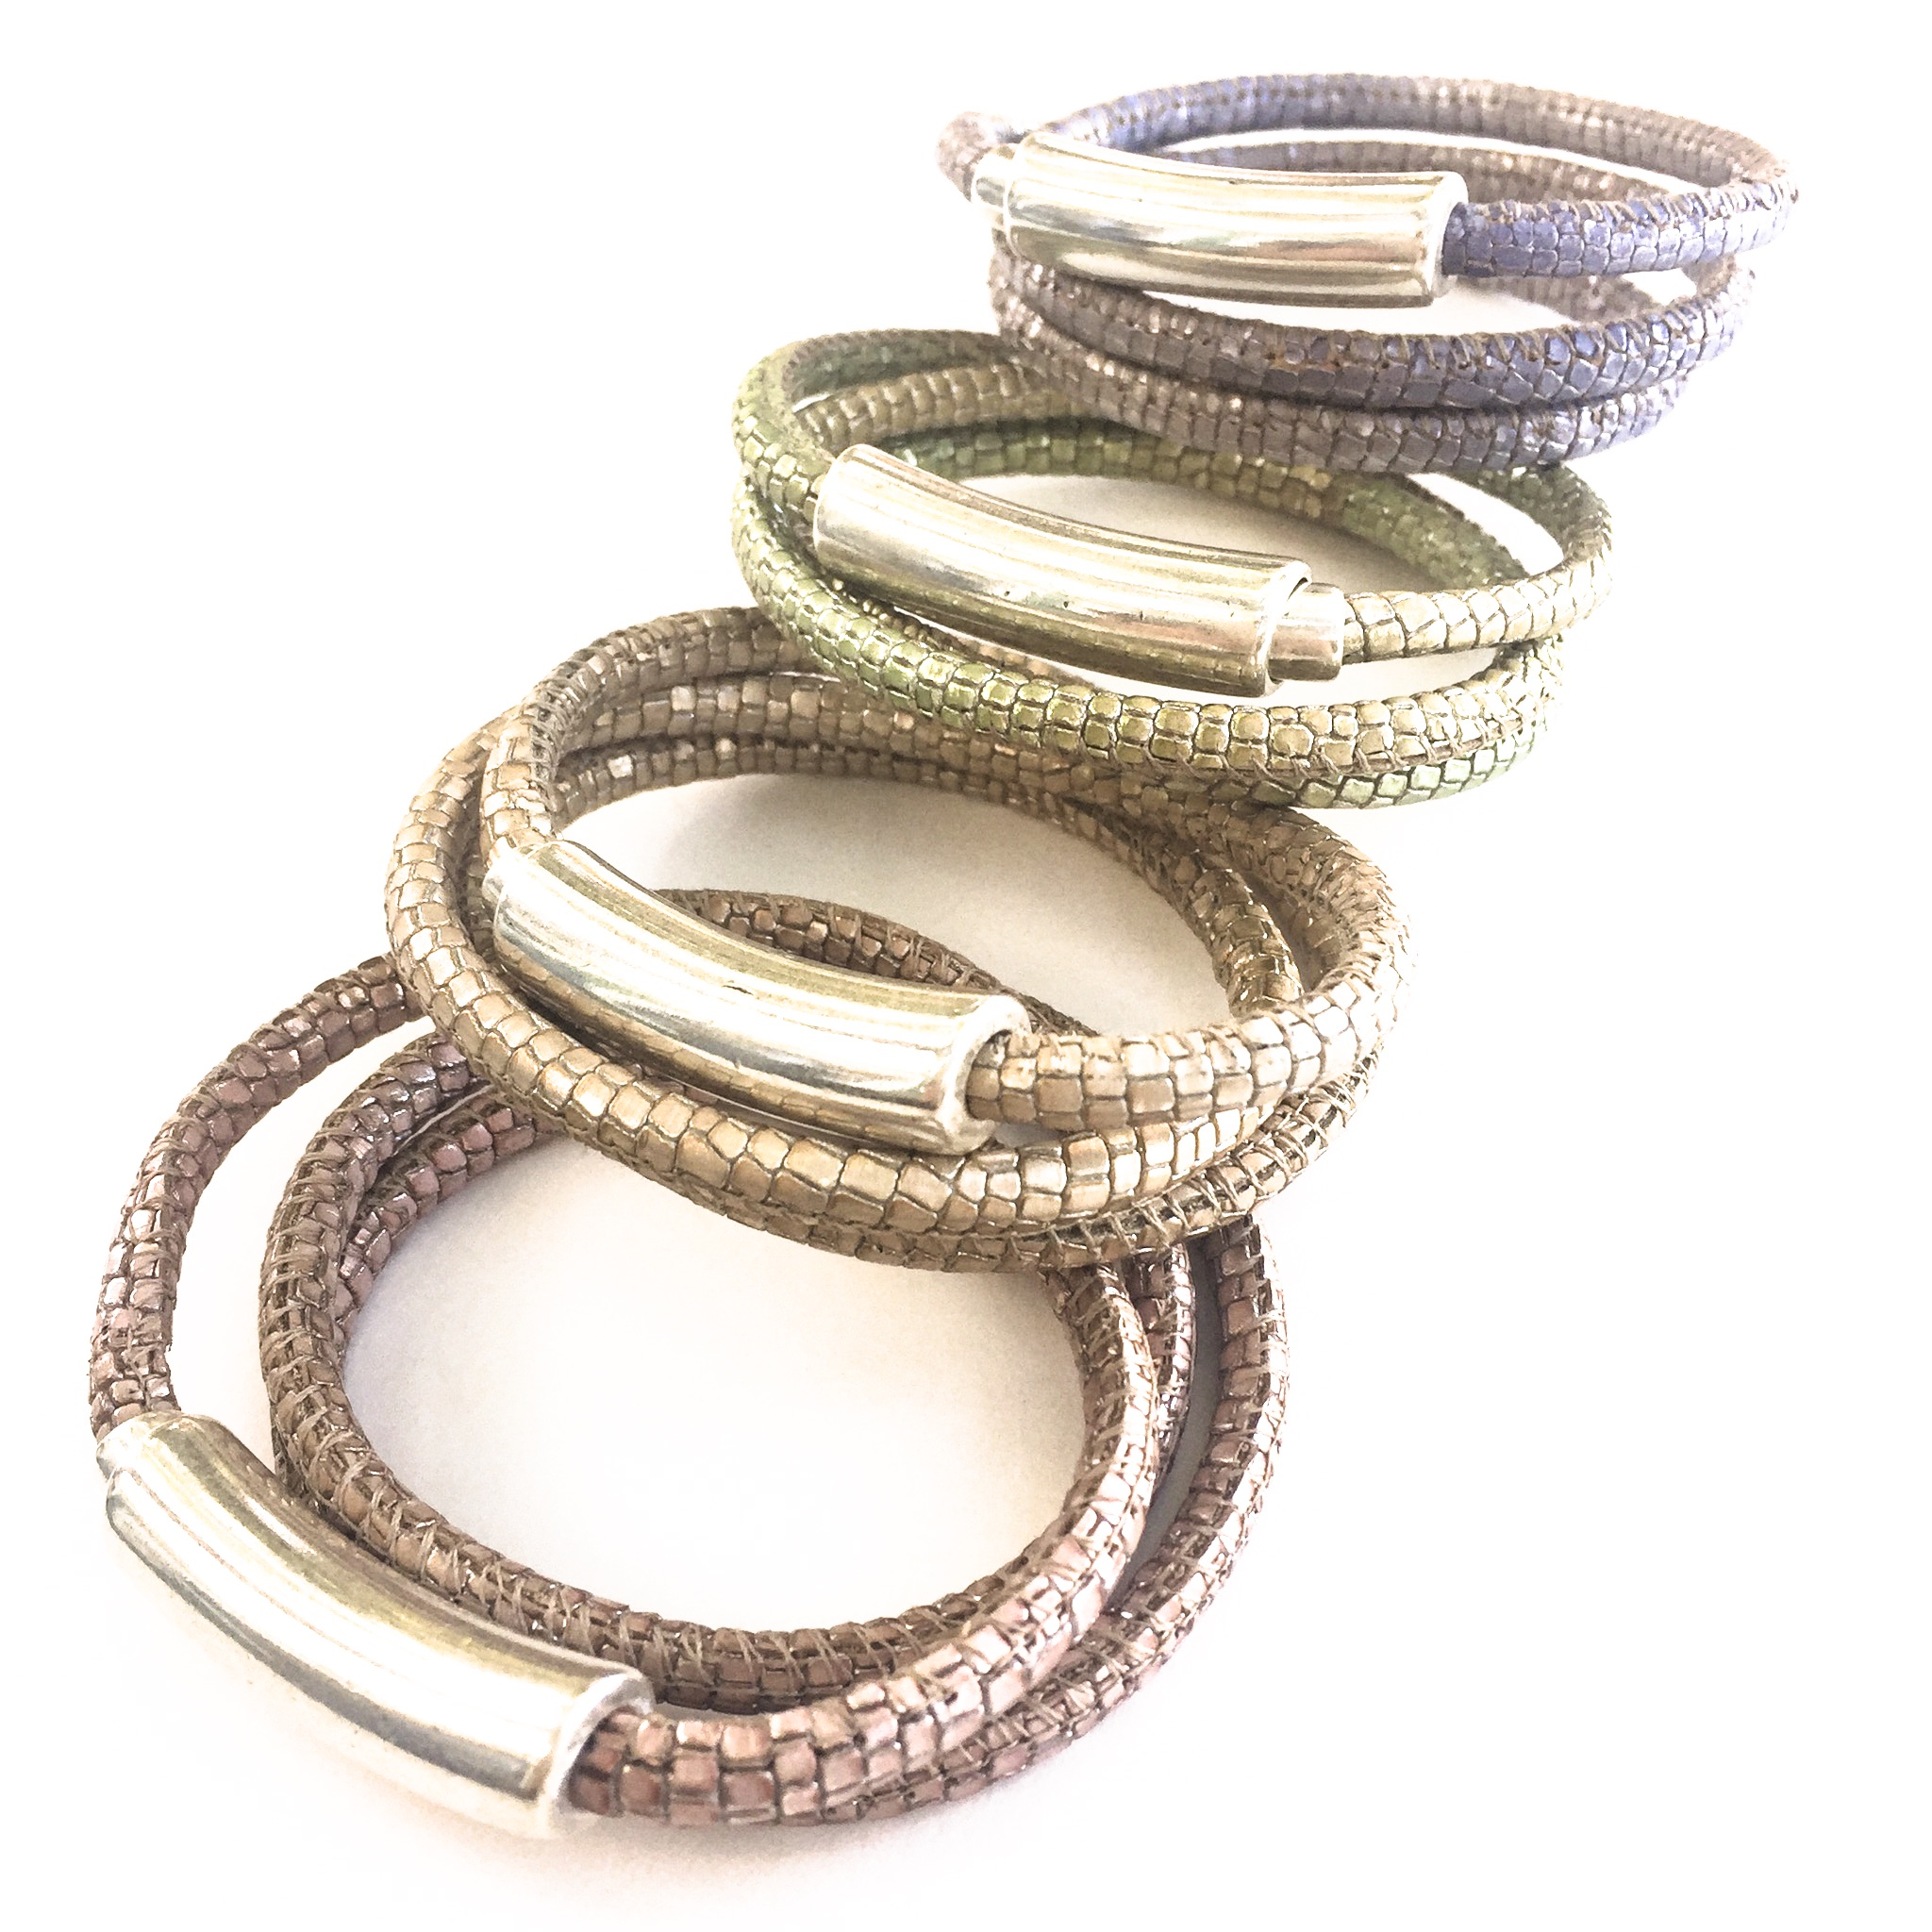 NEW Metallic Leather Wrap Bracelet